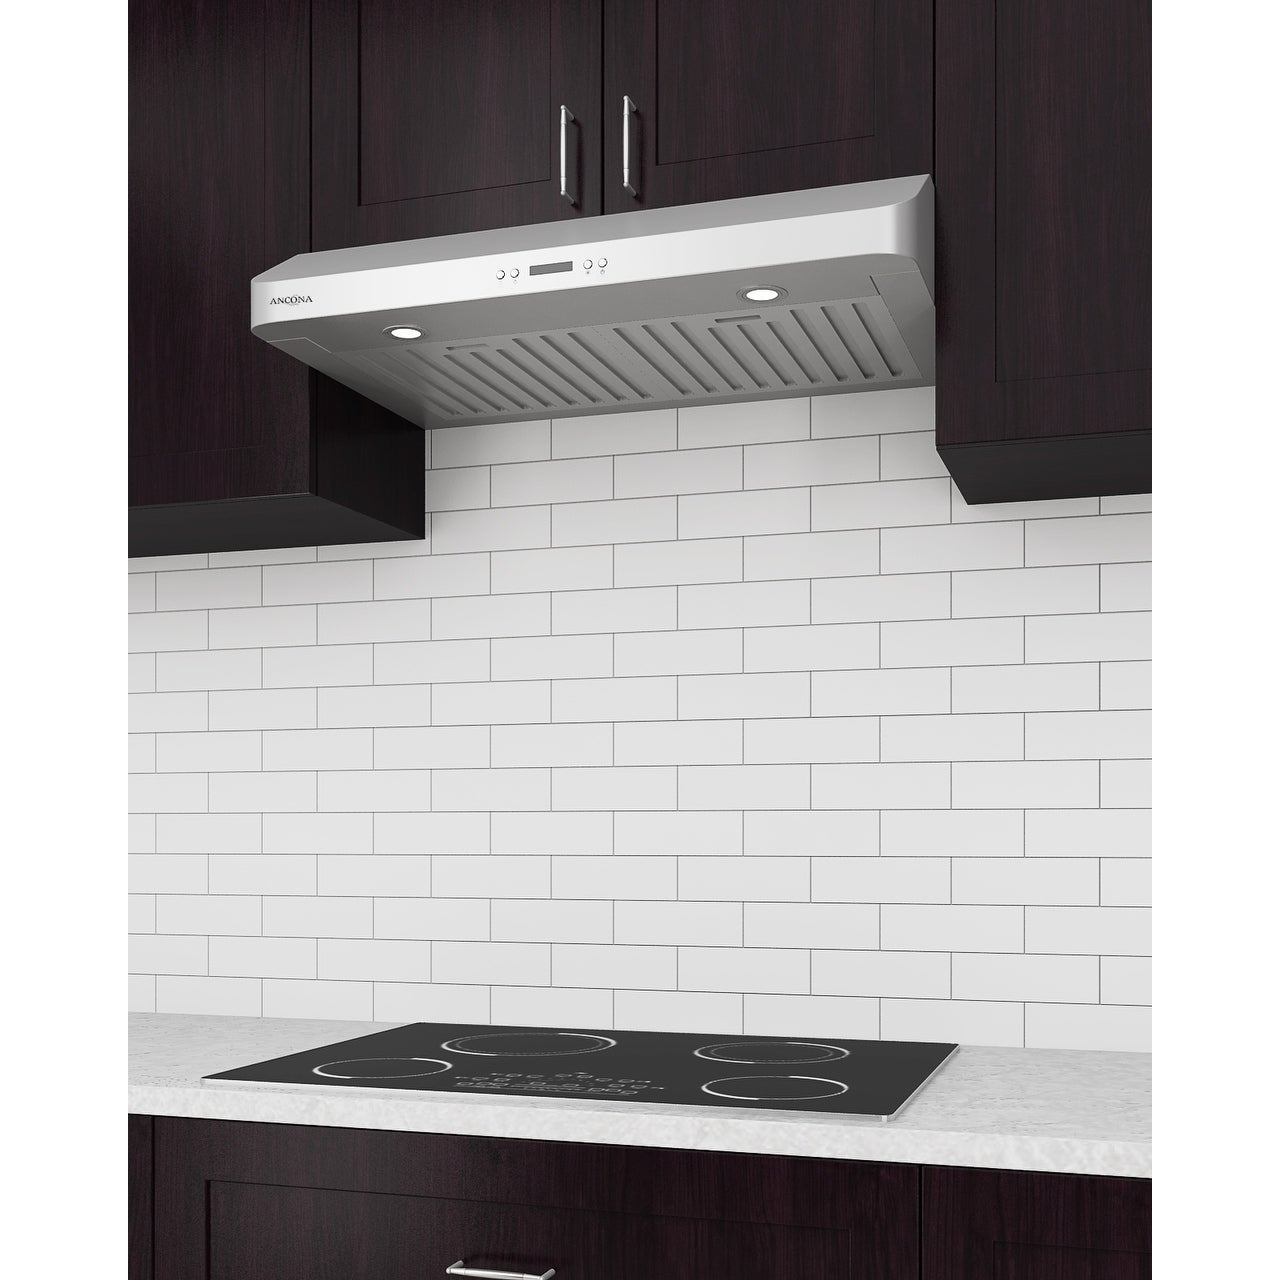 Attractive Shop Ancona Slim Chef 30 In. Under Cabinet Range Hood In Stainless Steel    Free Shipping Today   Overstock.com   17016537